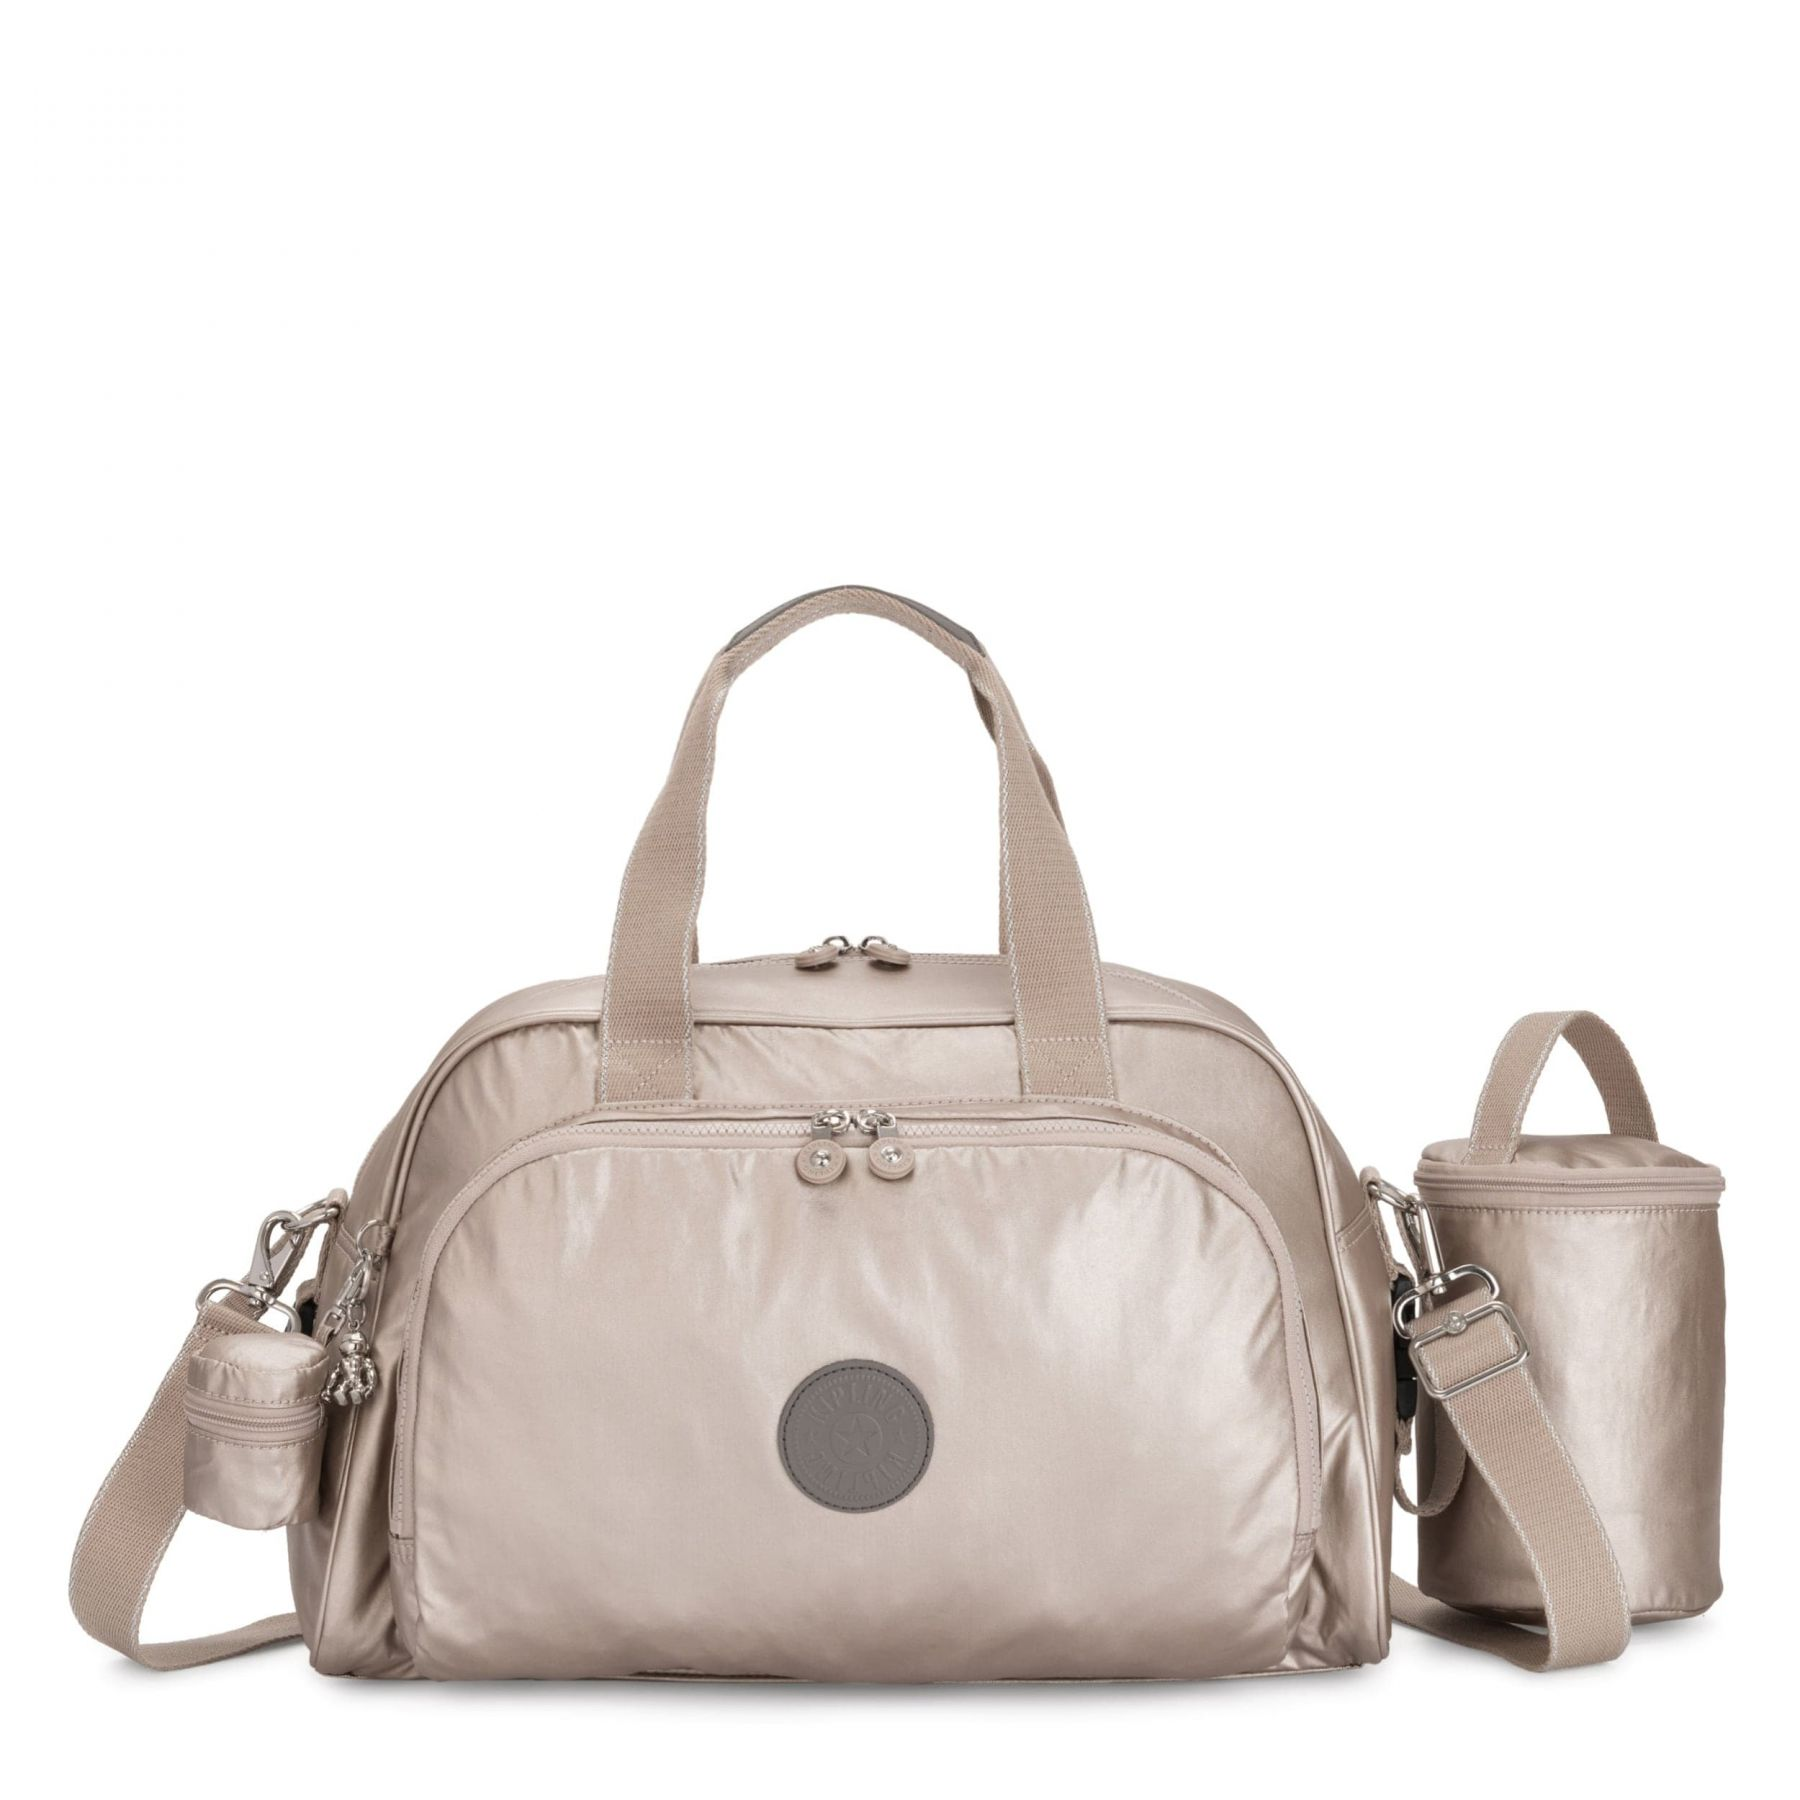 CAMAMA Latest Baby Bags by Kipling - Front view